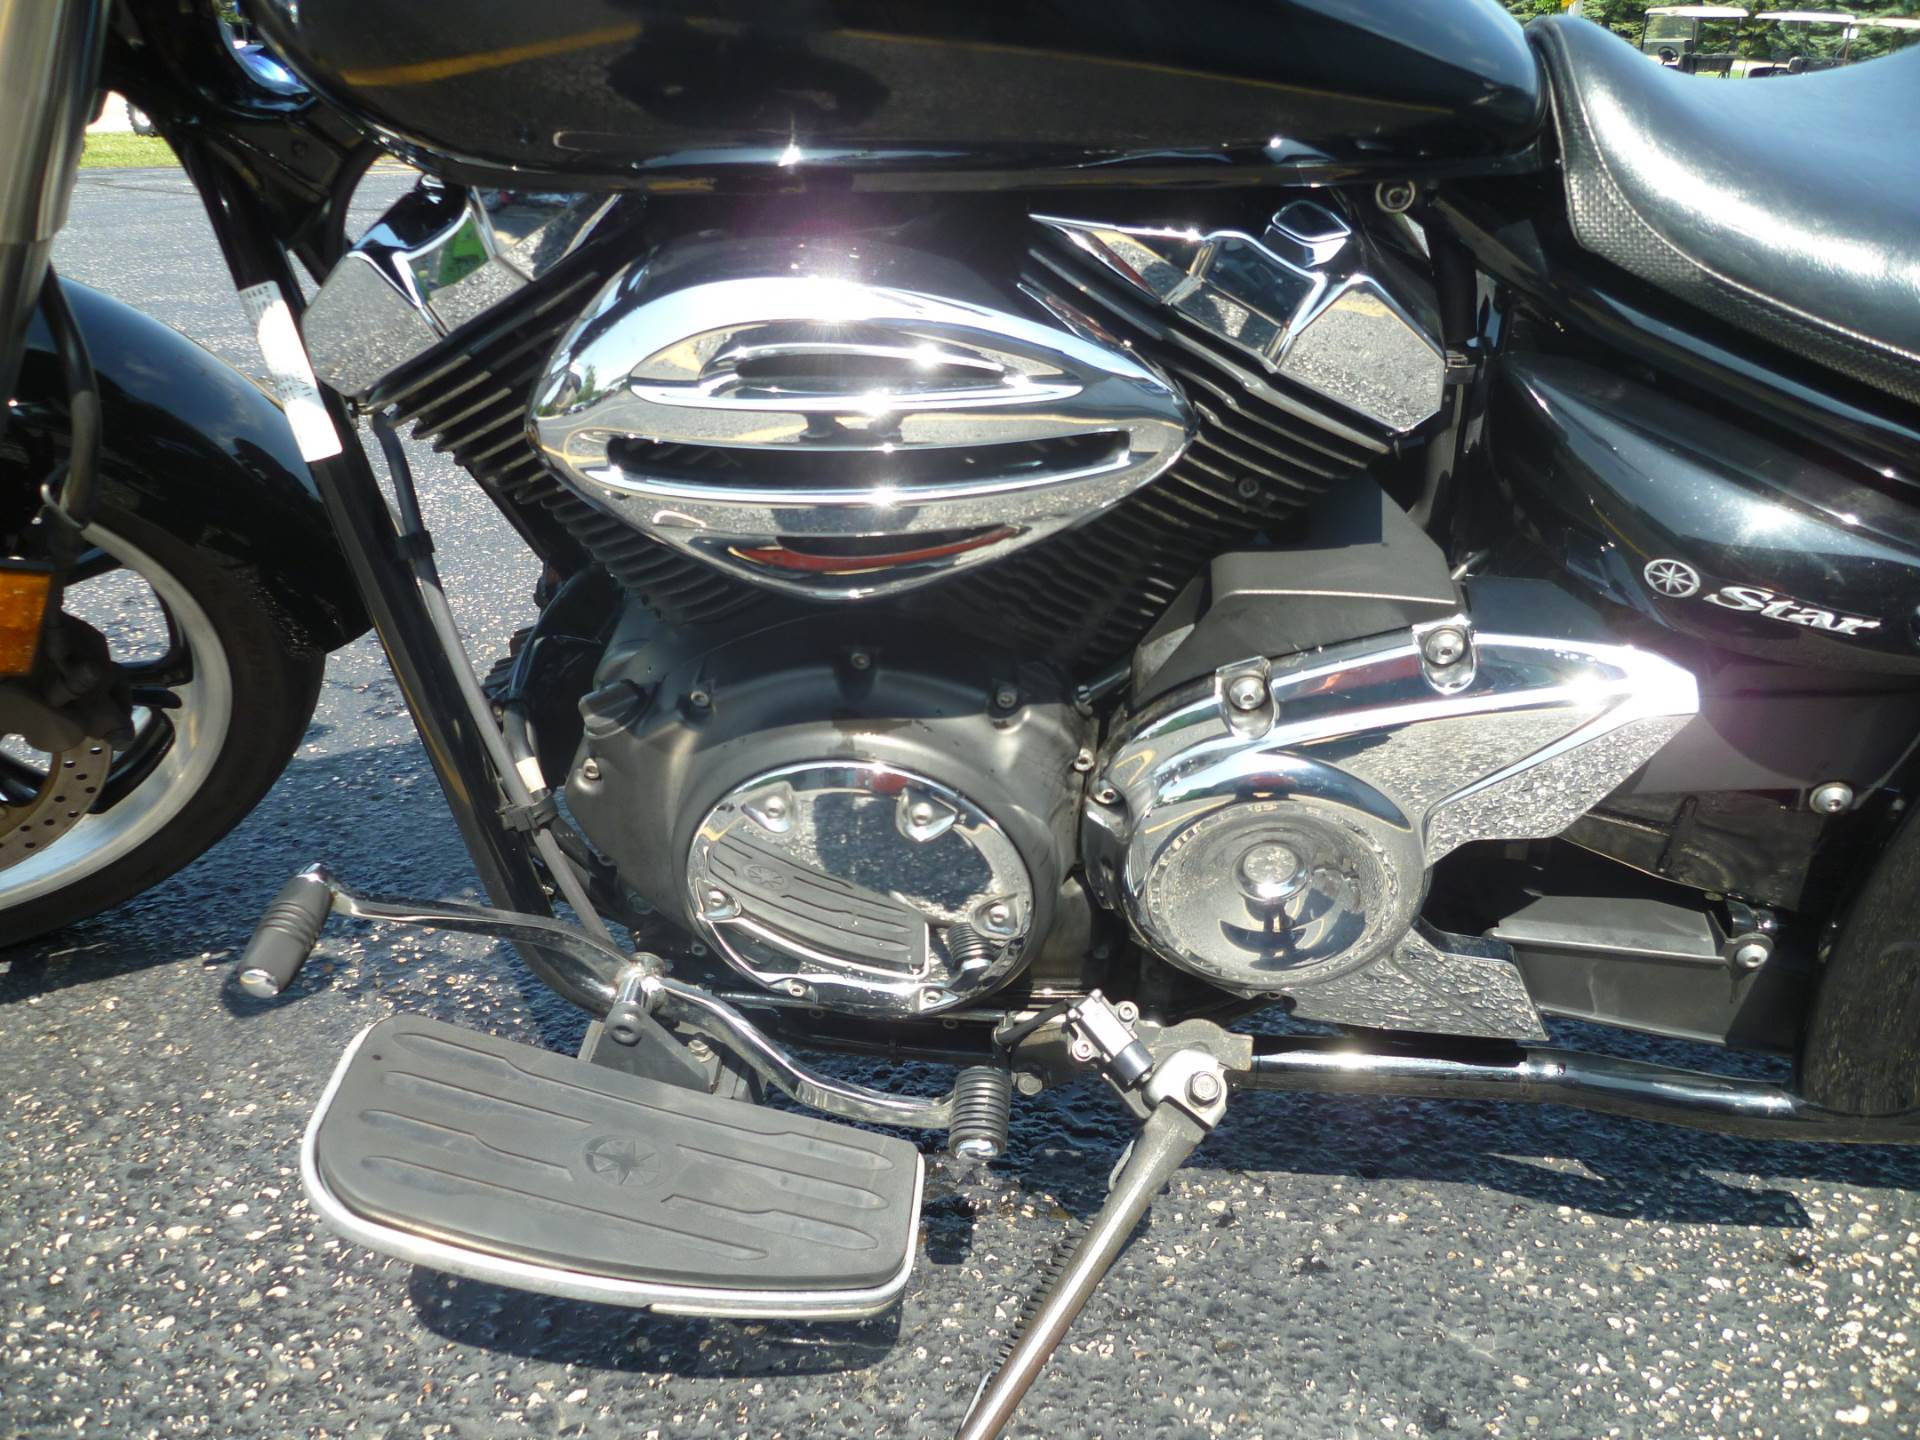 2011 Yamaha V Star 950 in Union Grove, Wisconsin - Photo 10